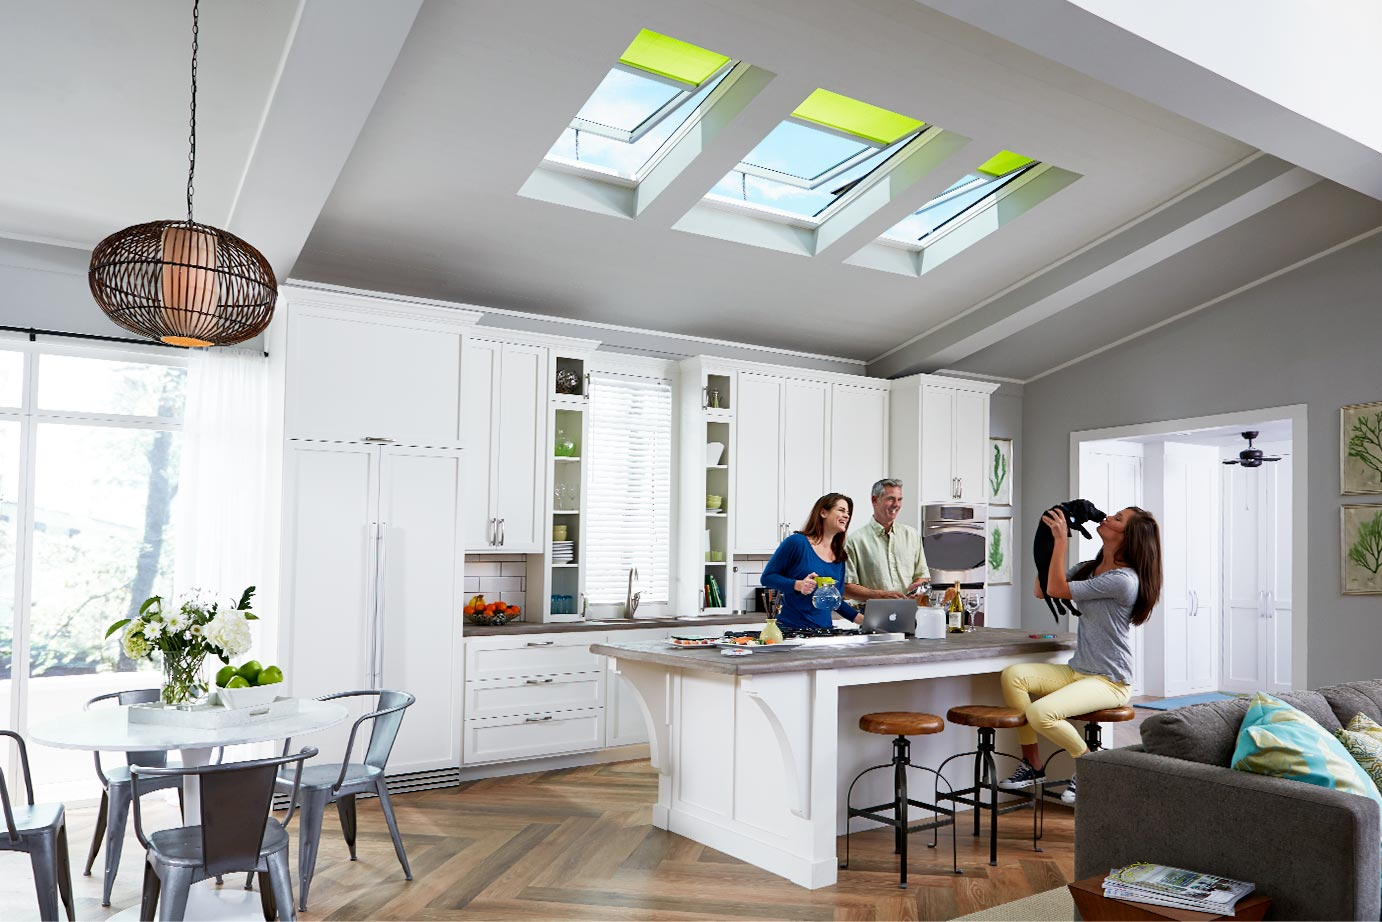 kitchen green blinds?h=922&la=en&w=1382&cc=grid_12&key=145917965341898&sw=960 velux frequently asked questions velux klf 100 wiring diagram at alyssarenee.co